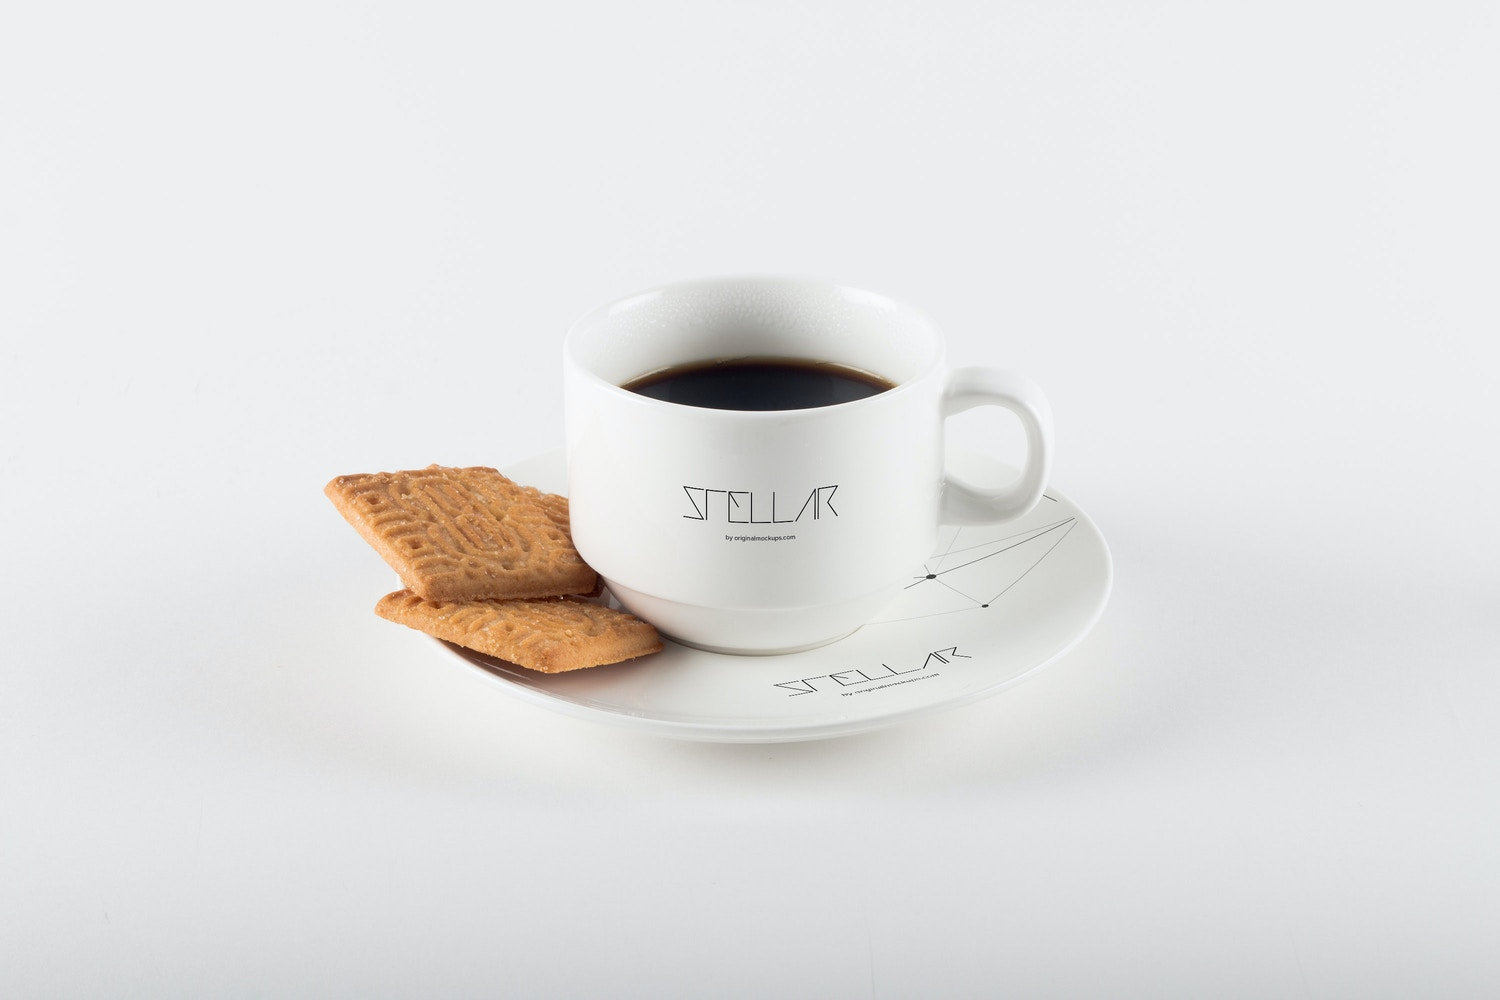 Coffee Cup with Cookies Mockup 03 por Original Mockups en Original Mockups